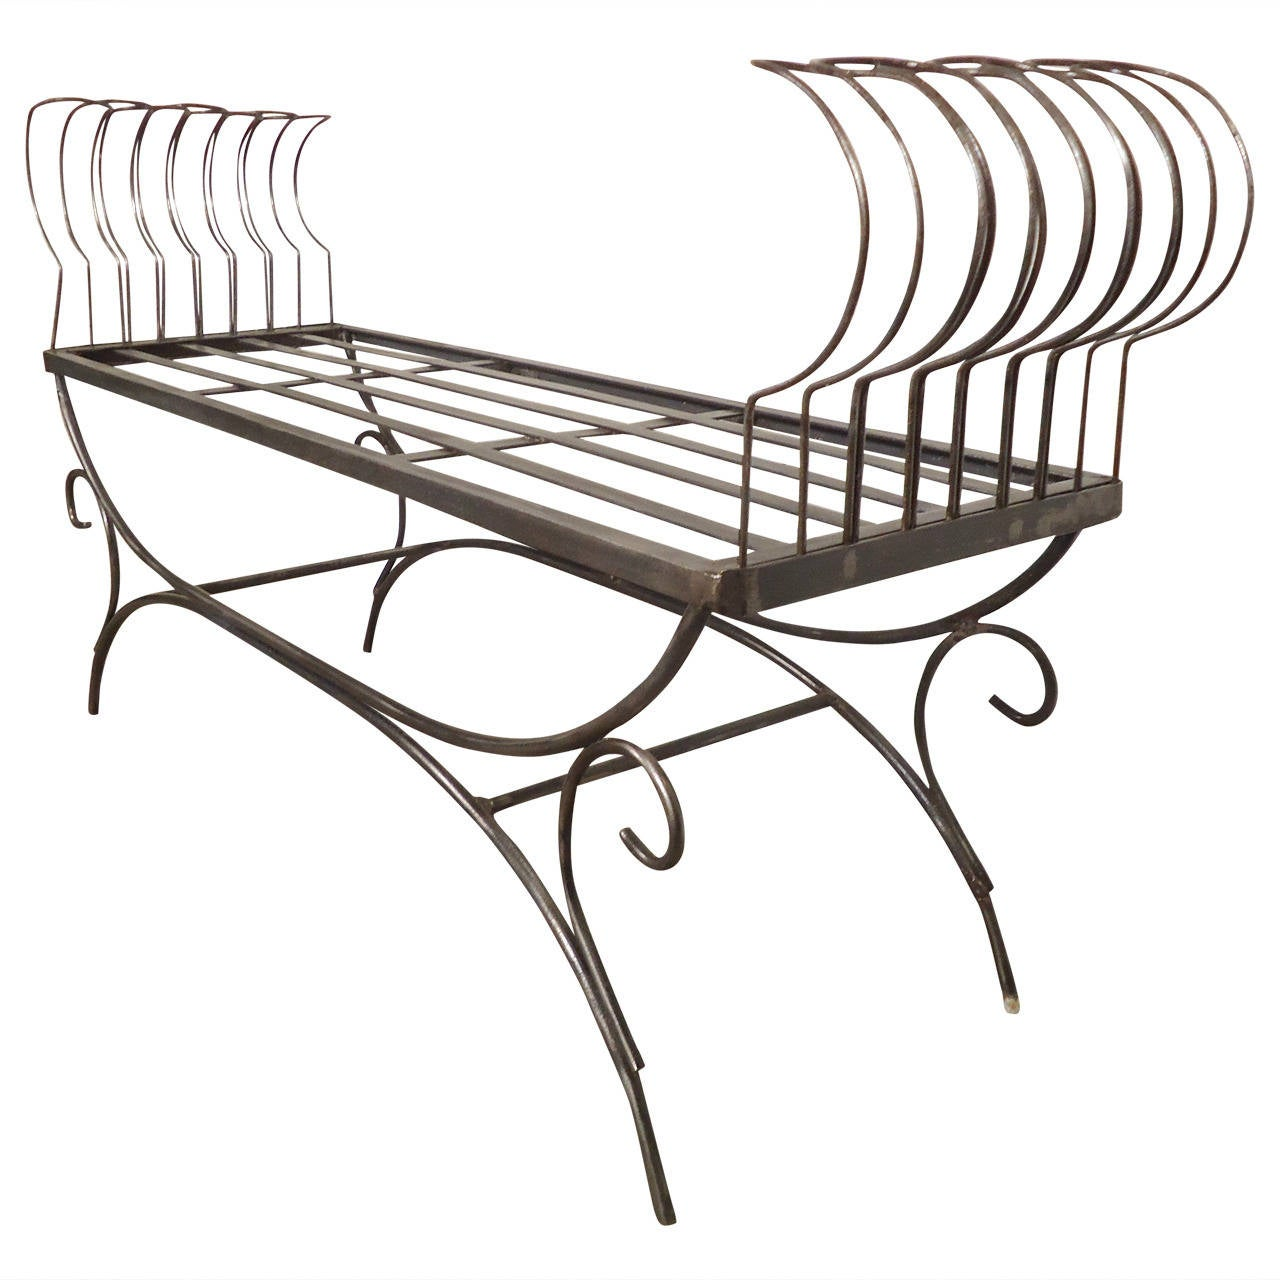 Rare Iron Bench with Ornamental Detailing For Sale